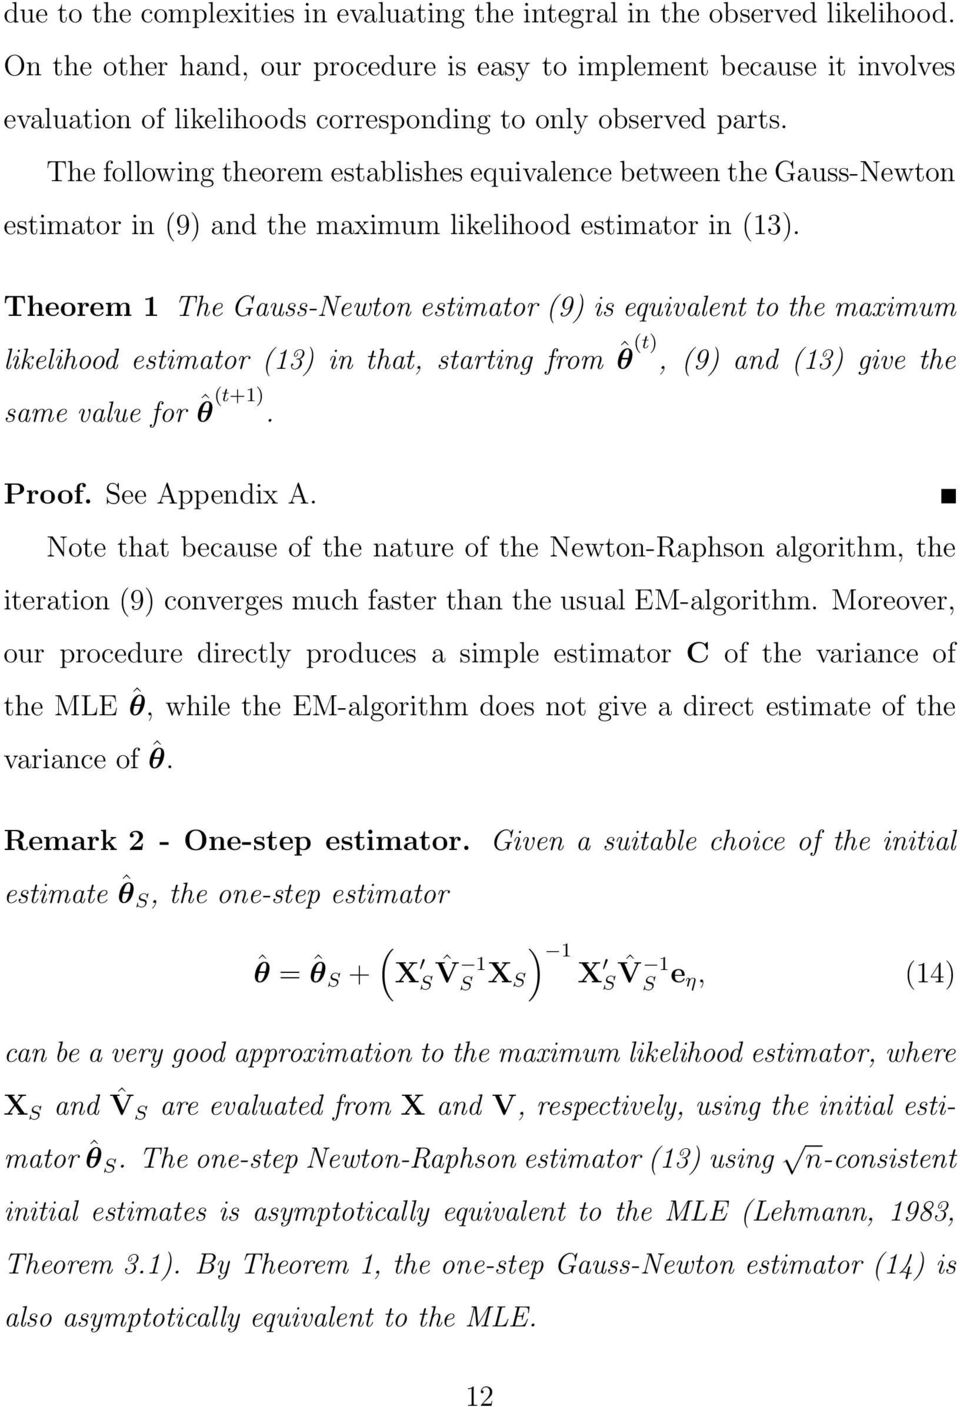 The following theorem establishes equivalence between the Gauss-Newton estimator in 9) and the maximum likelihood estimator in 13).